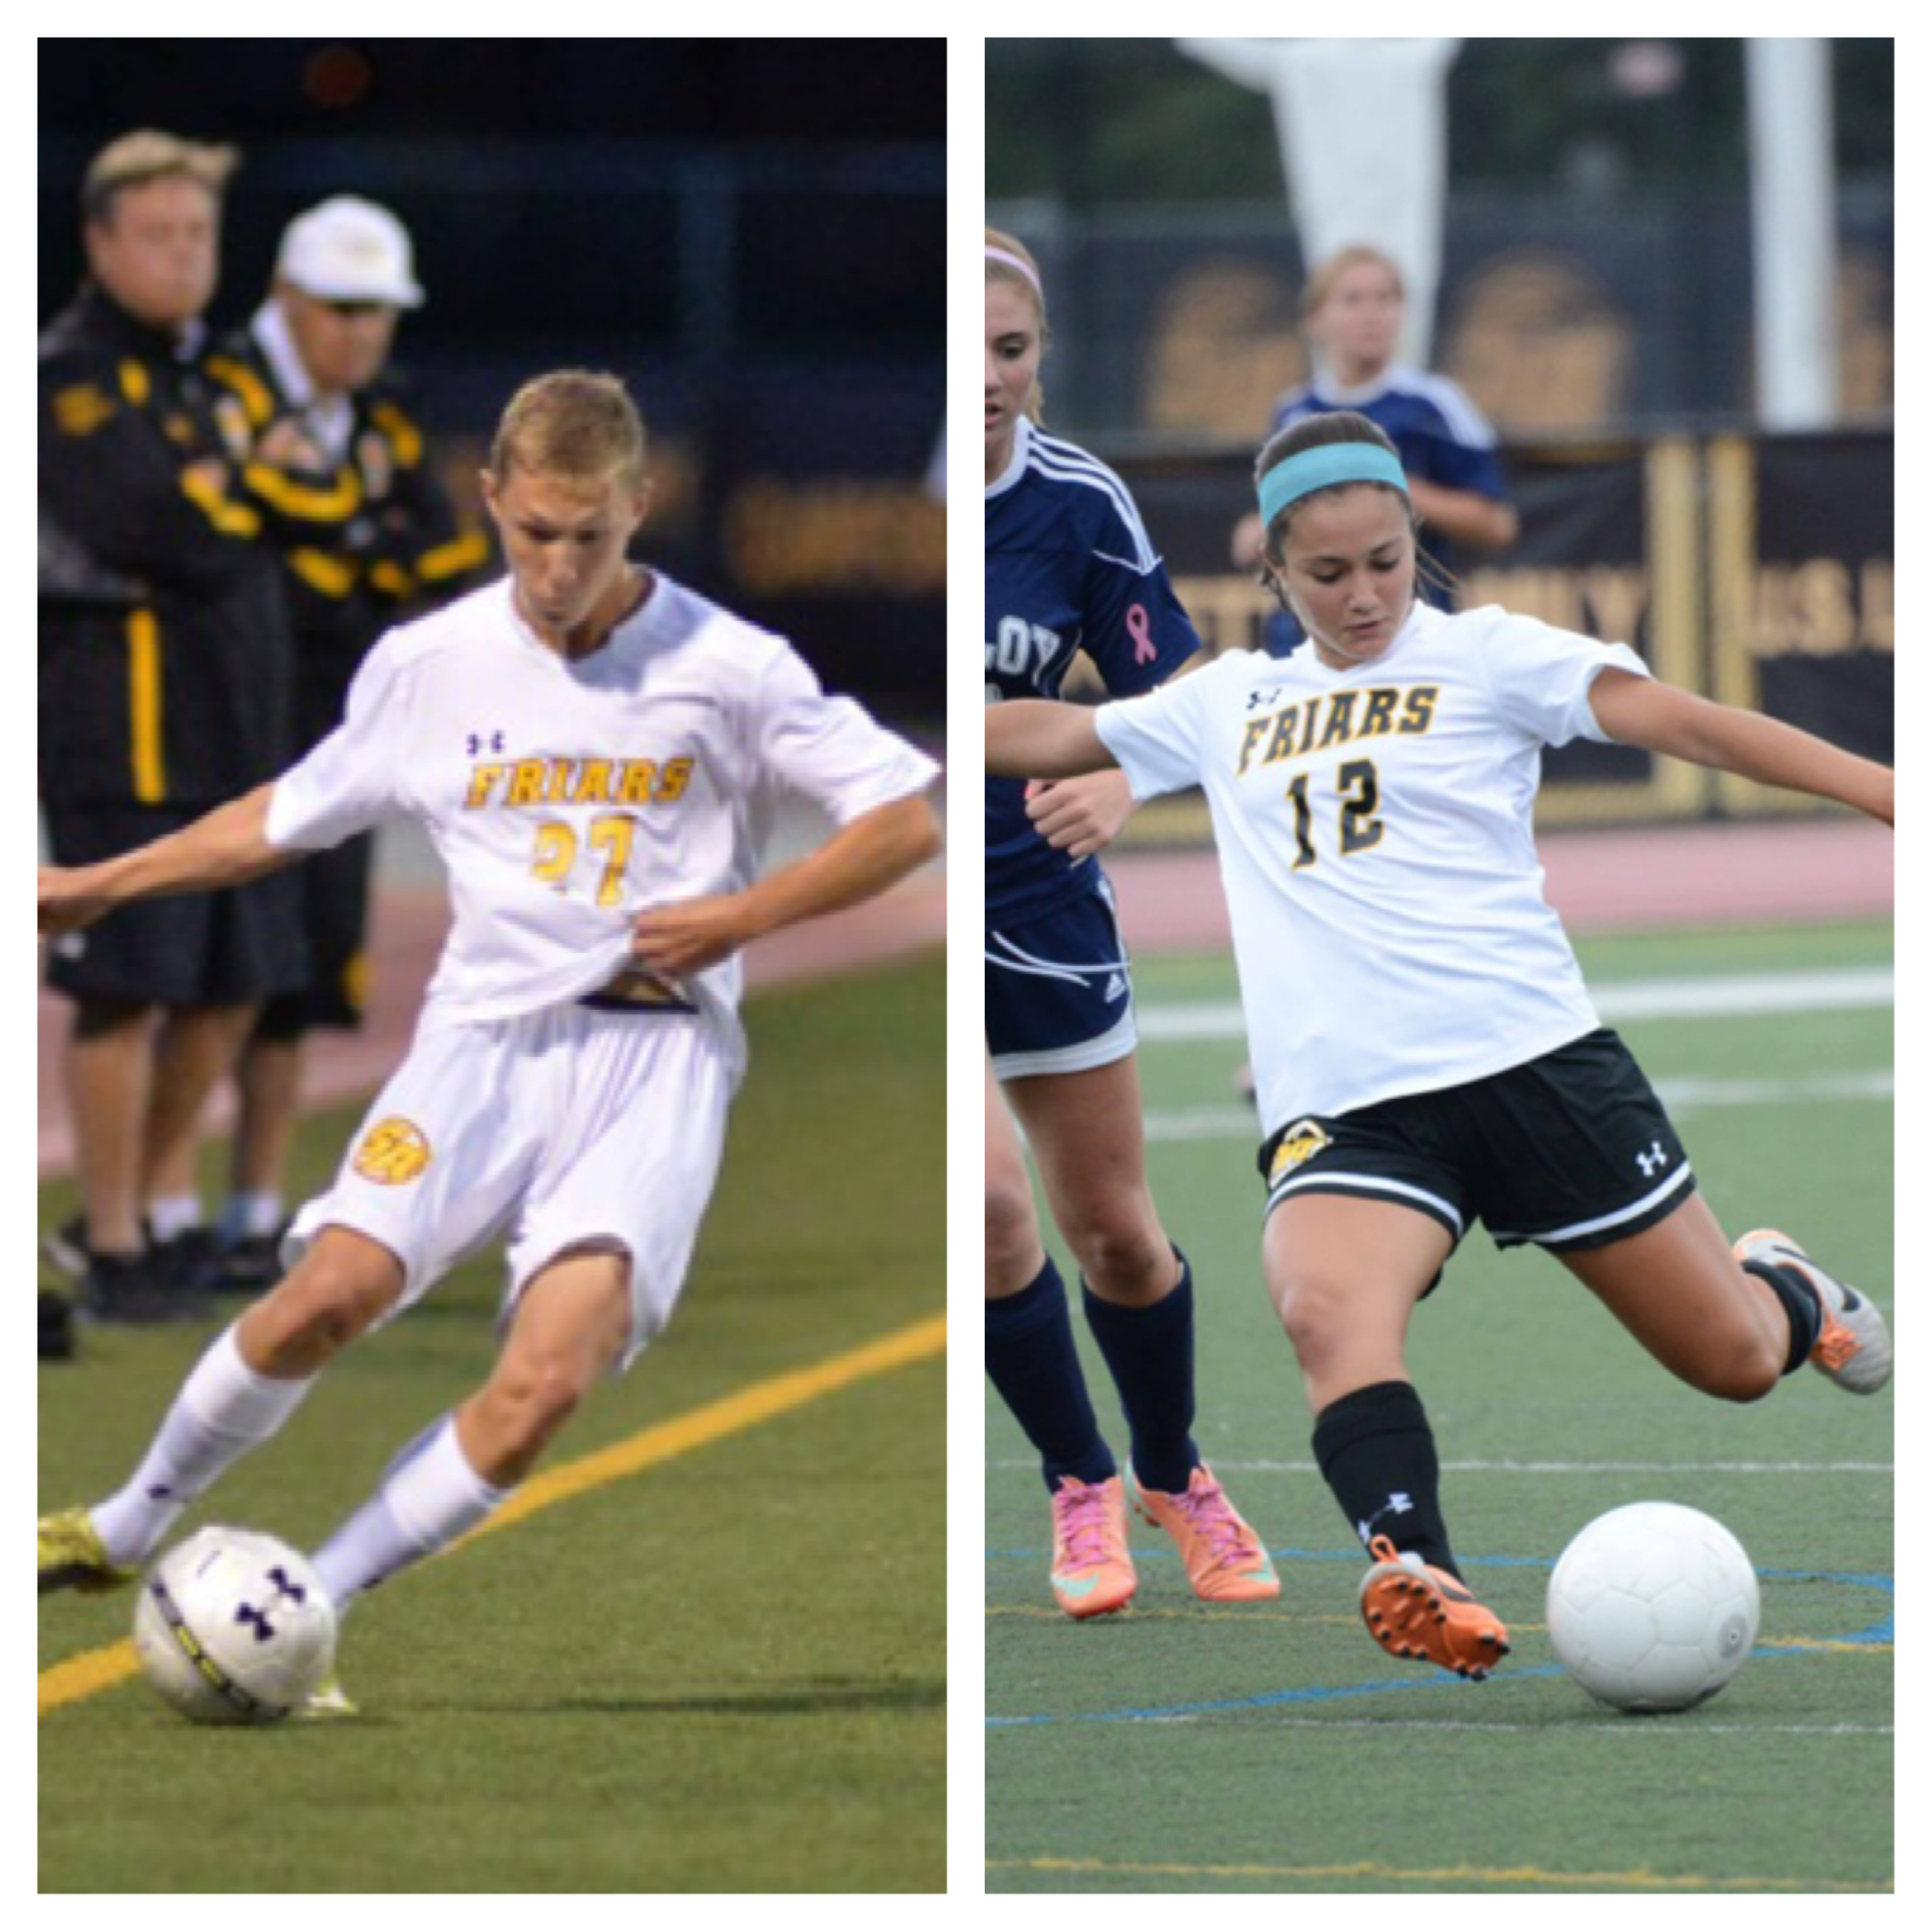 Chase Gurcan (left) controls the ball in a game earlier this season for St. Anthony's High School, while Francesca Venezia (right) scores one of the six goals to lead the Friars to a state championship on Nov. 10.